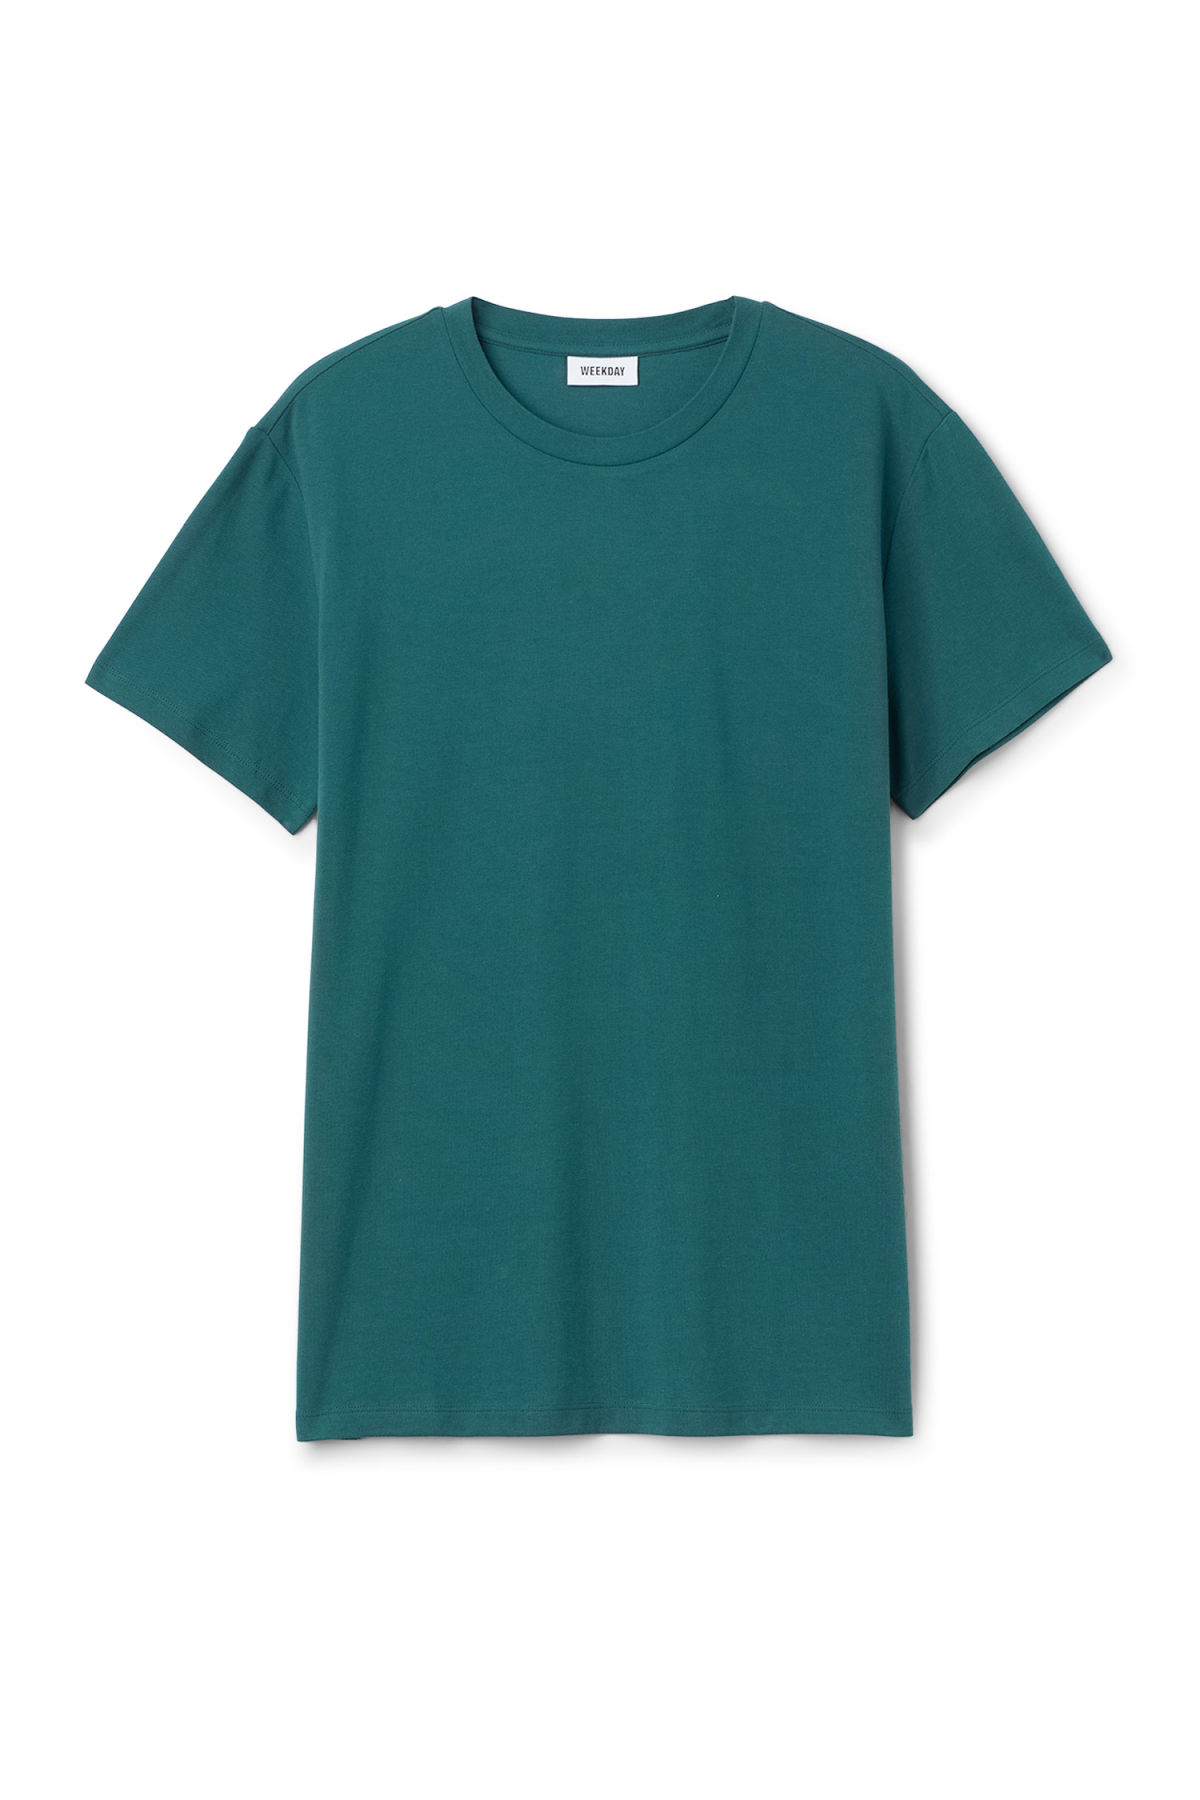 Front image of Weekday tennis t-shirt in turquoise